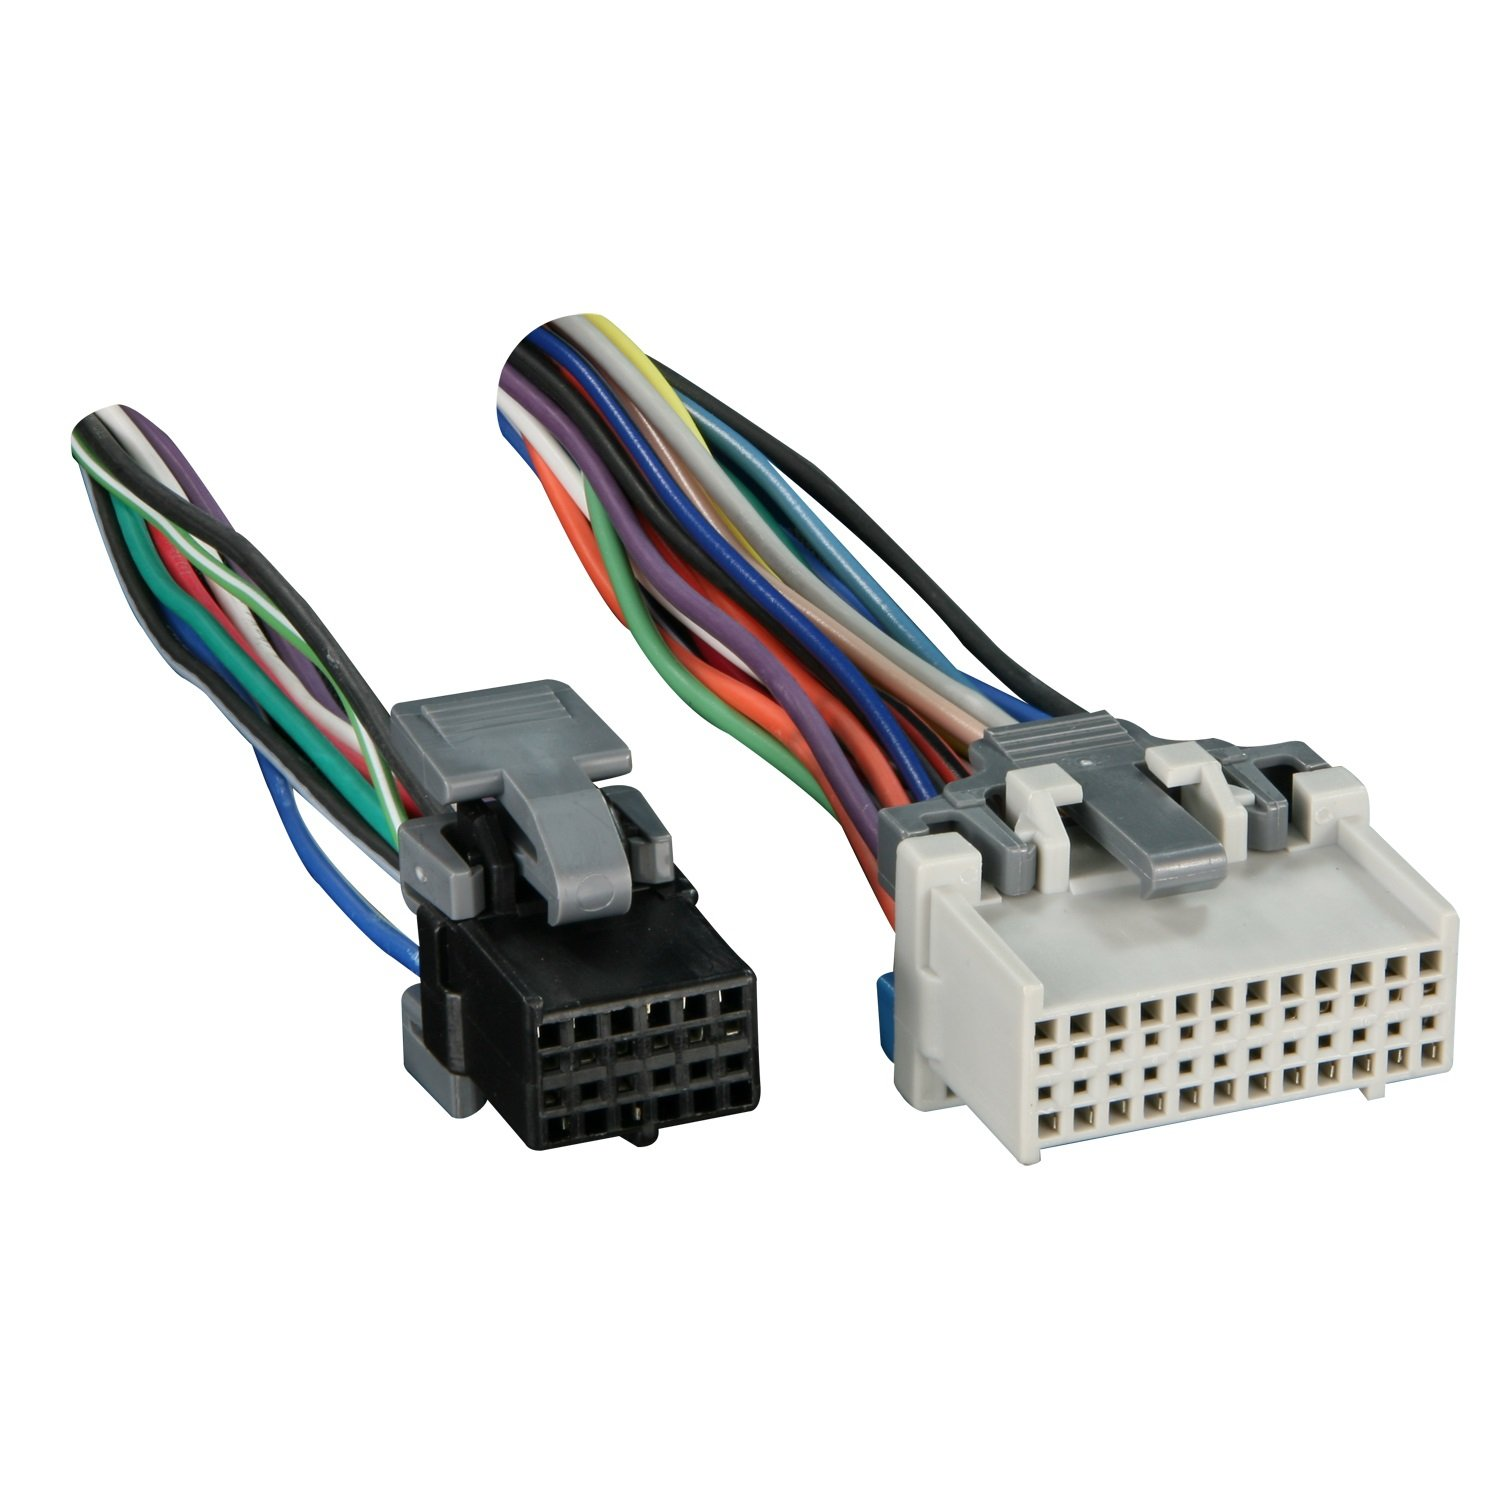 711log4bdML._SL1500_ amazon com metra turbowires 71 2003 1 wiring harness car electronics best buy speaker wiring harness at reclaimingppi.co